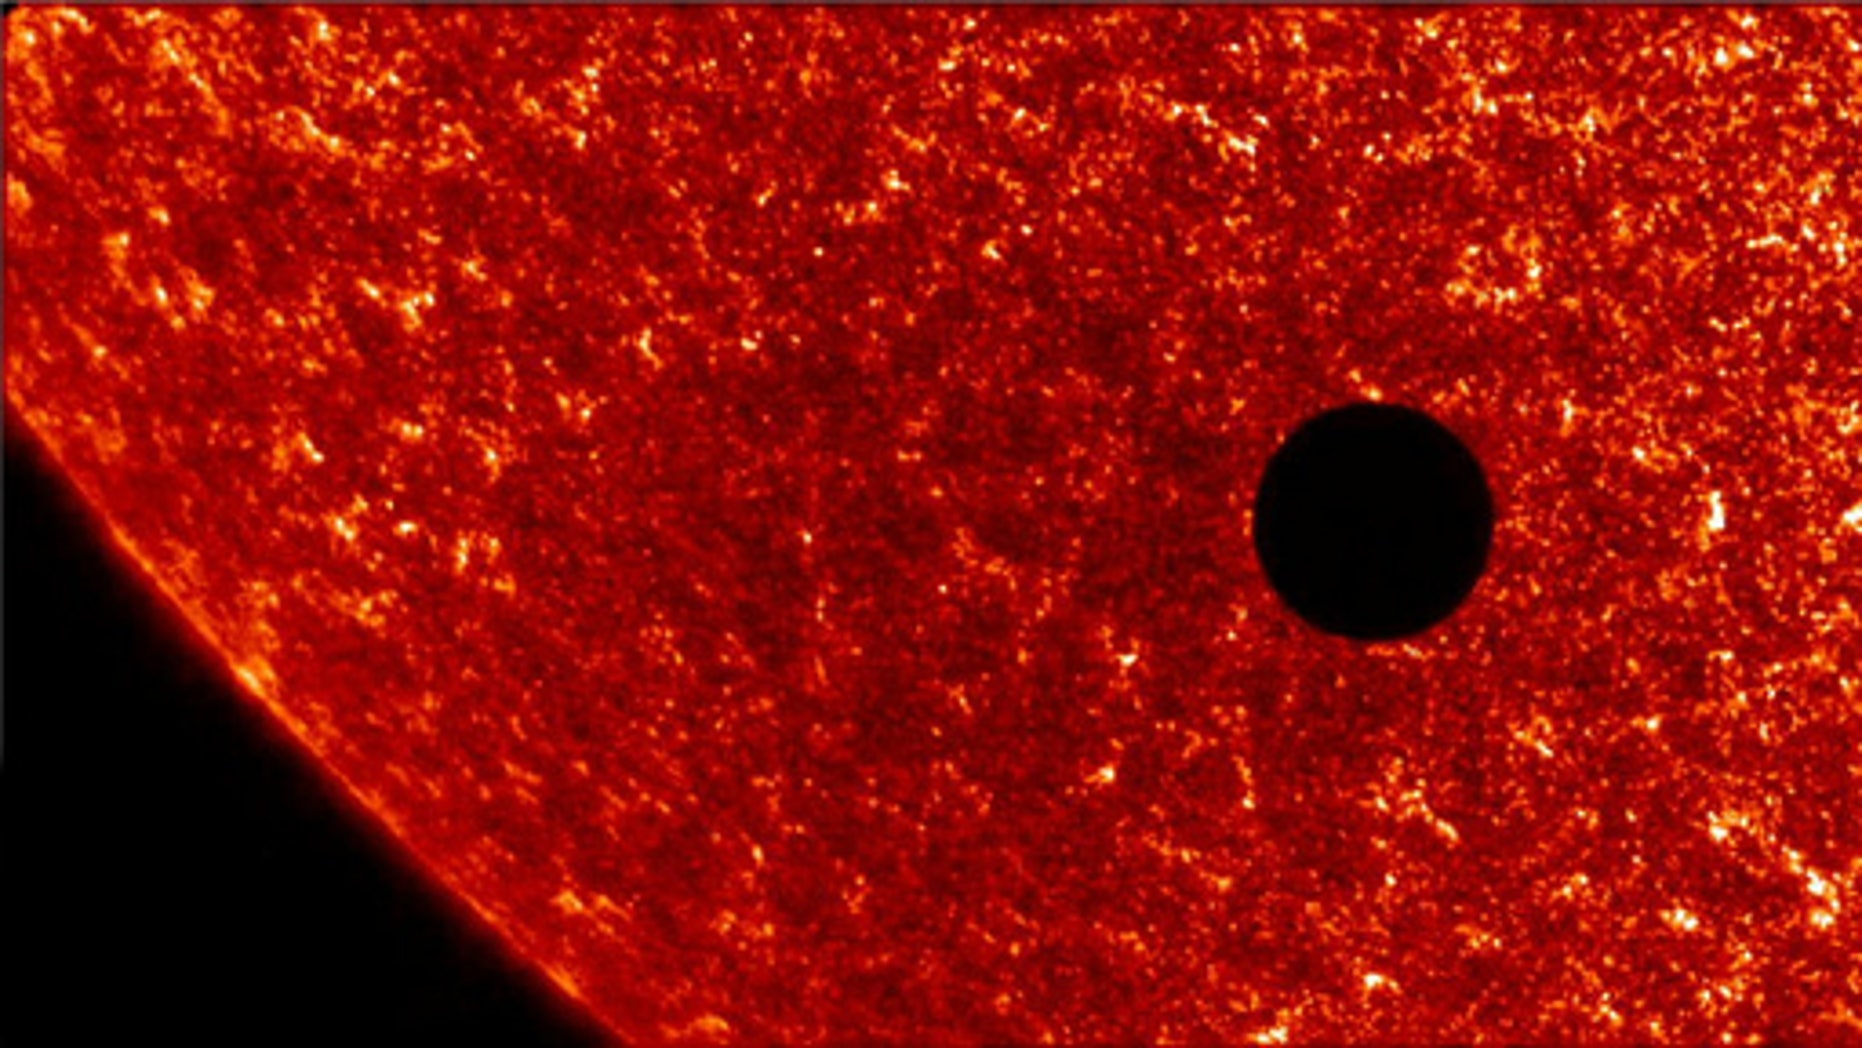 In 2004, Venus passed across the face of the sun. June 5, 2012 is the last transit of Venus until 2117.